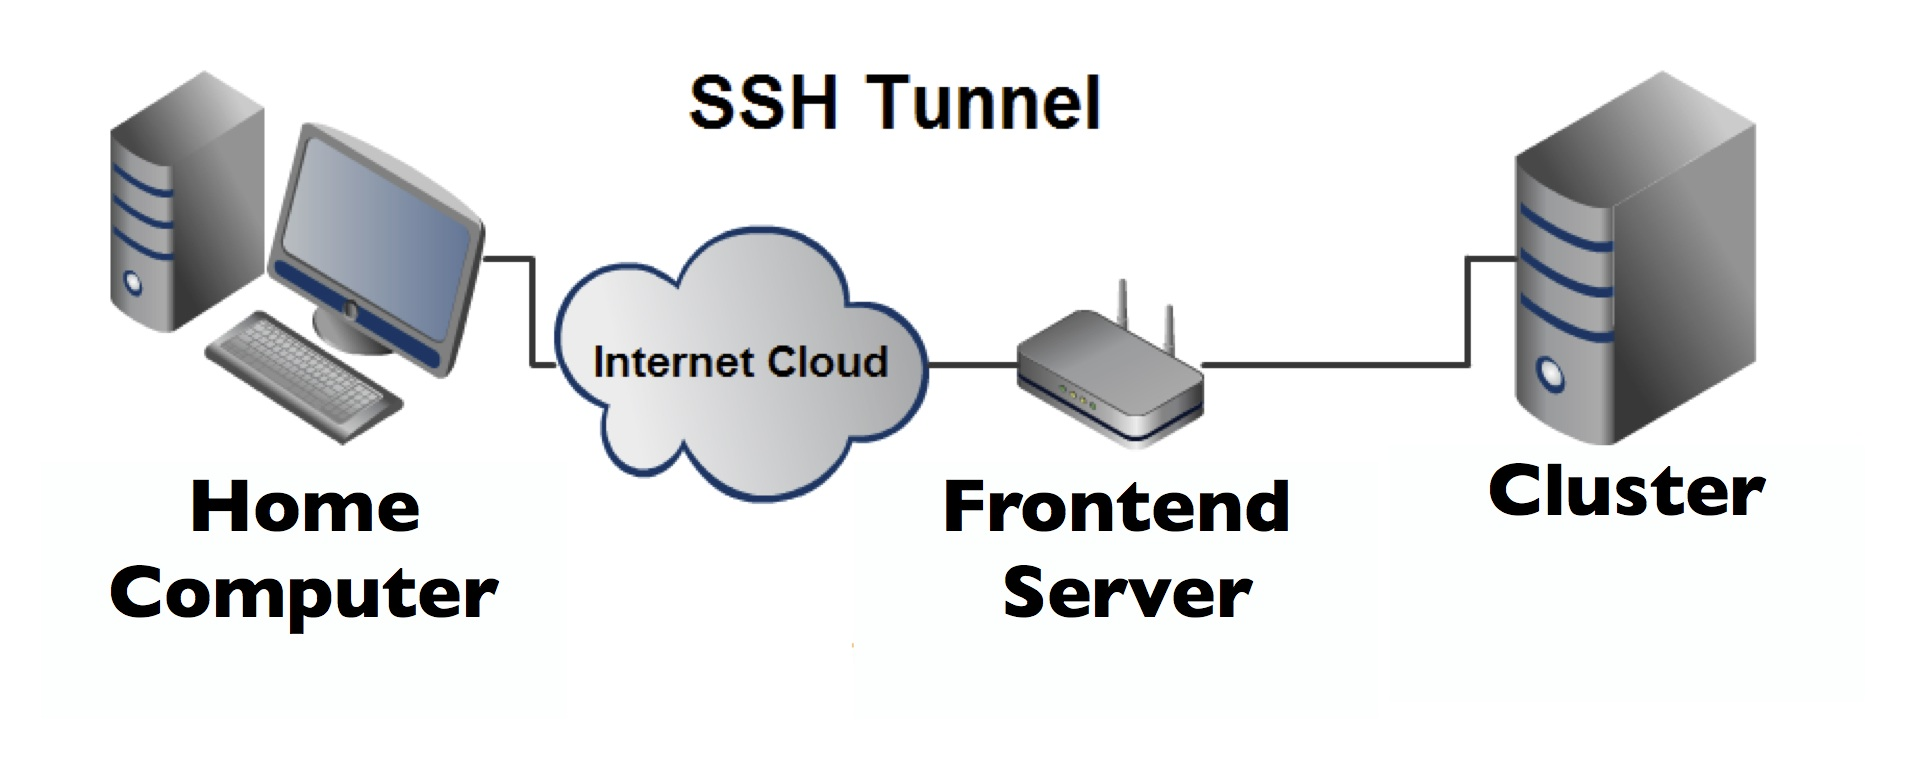 SSH_Tunnel